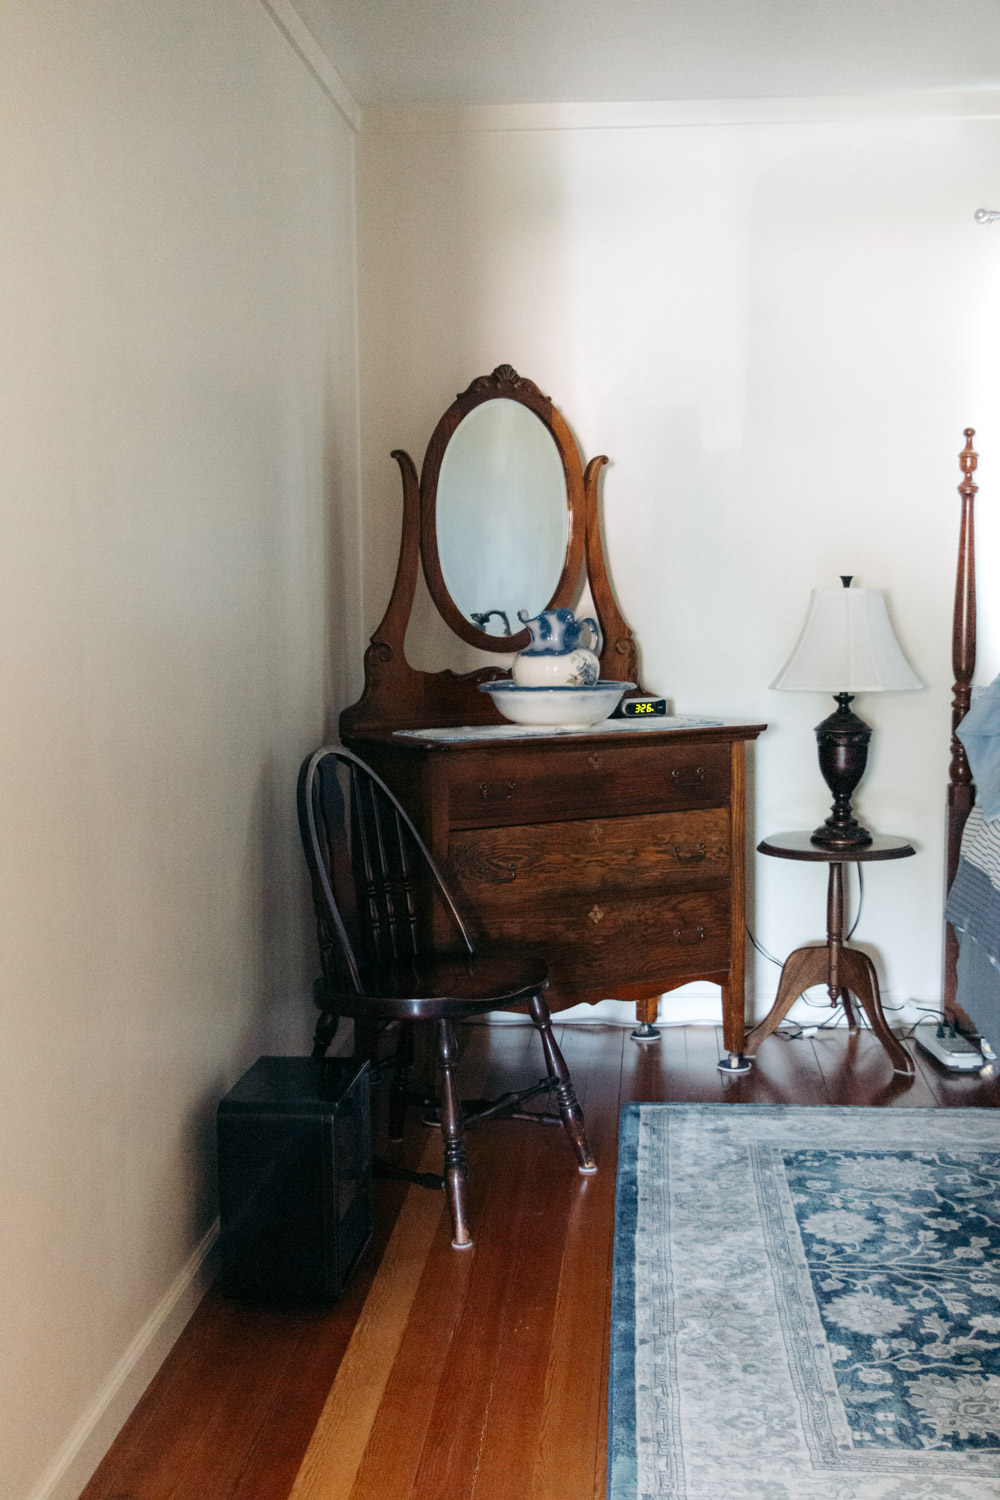 Grandma's Cozy Farmhouse, an ideal Airbnb stay - Roads and Destinations